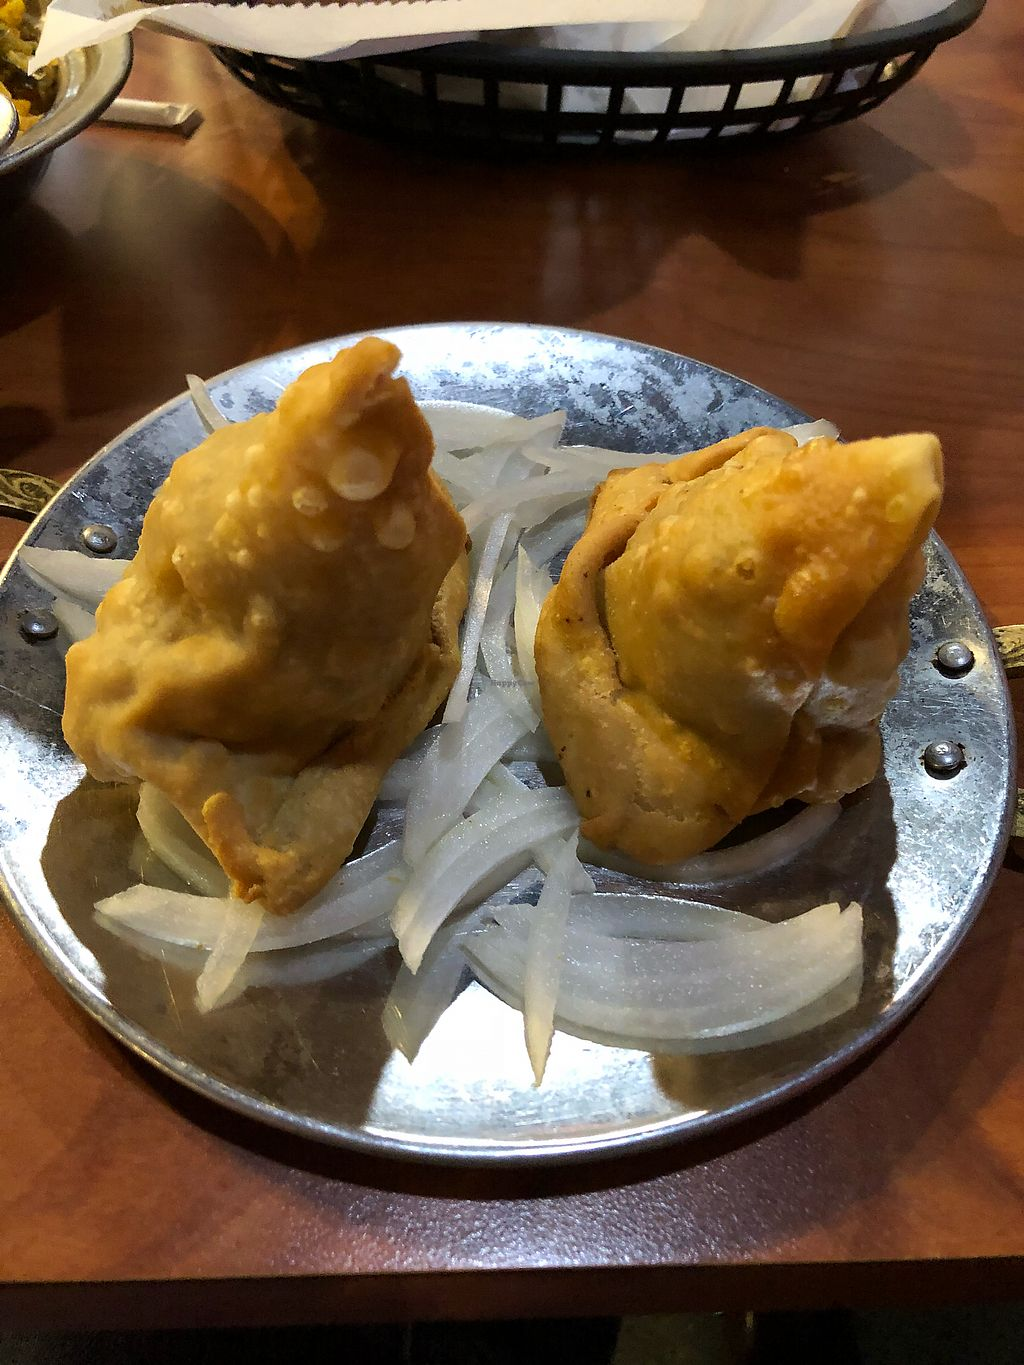 """Photo of Funky Desi  by <a href=""""/members/profile/Jadediana"""">Jadediana</a> <br/>Vegetable samosas  <br/> April 5, 2018  - <a href='/contact/abuse/image/46908/381237'>Report</a>"""